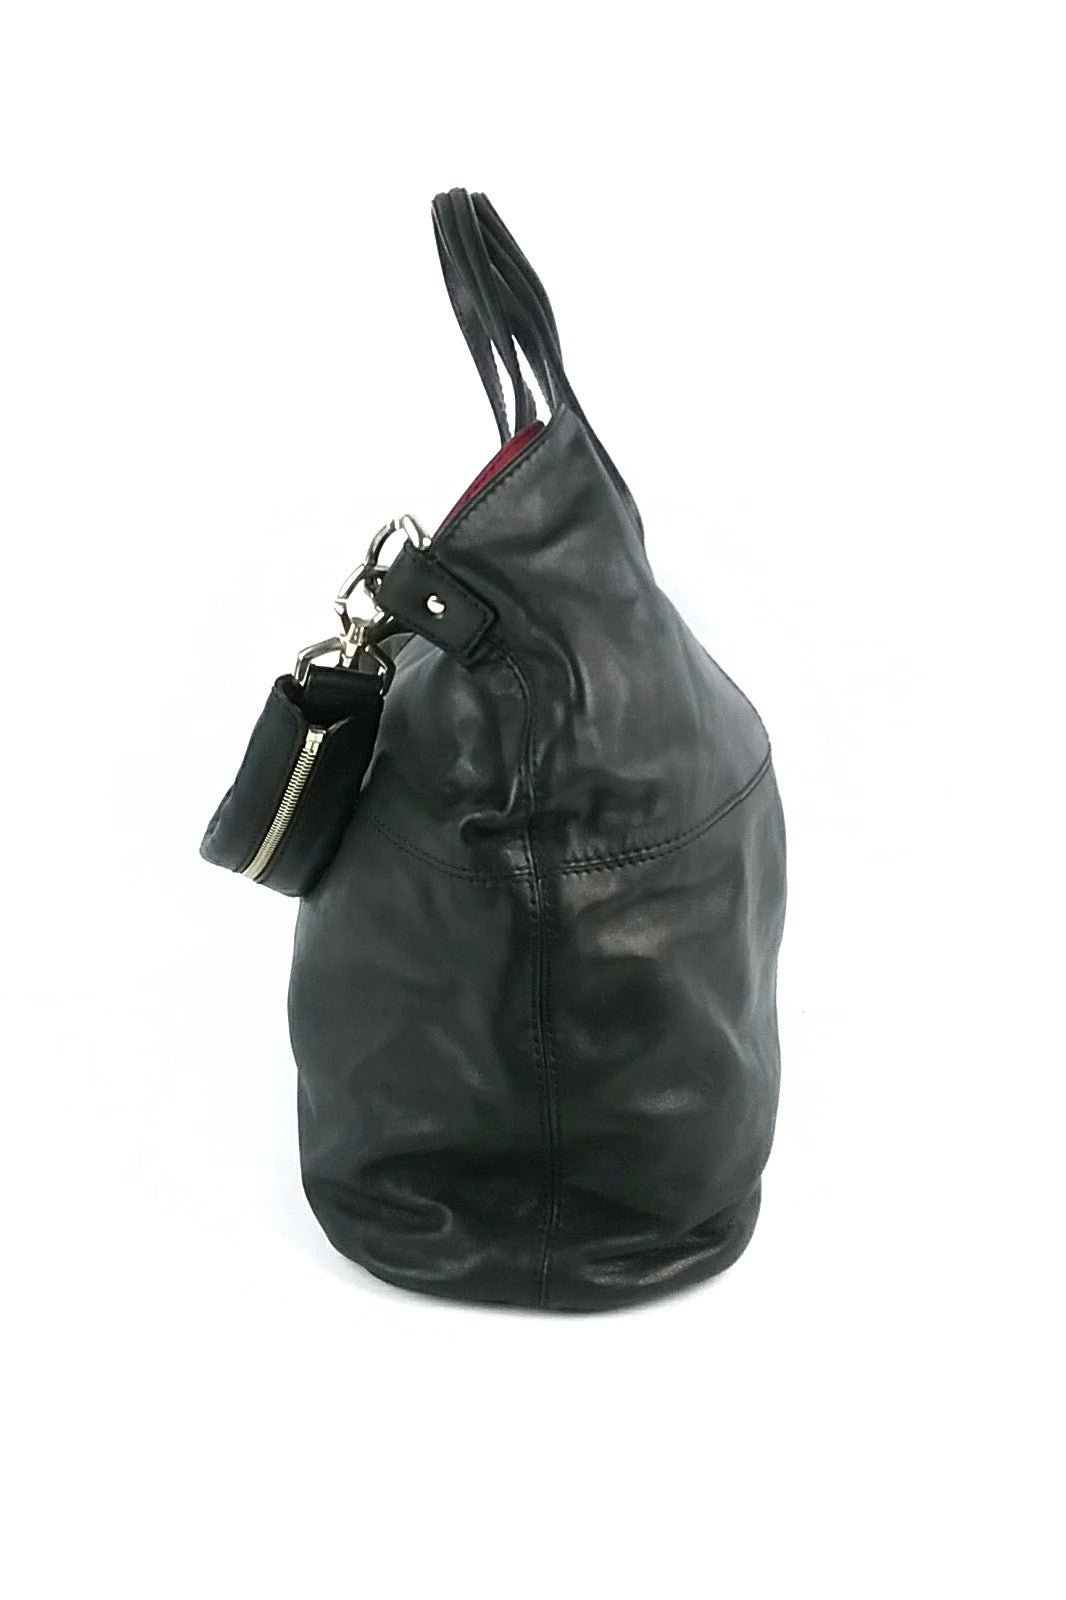 Black Leather Nightingale Shopping Tote